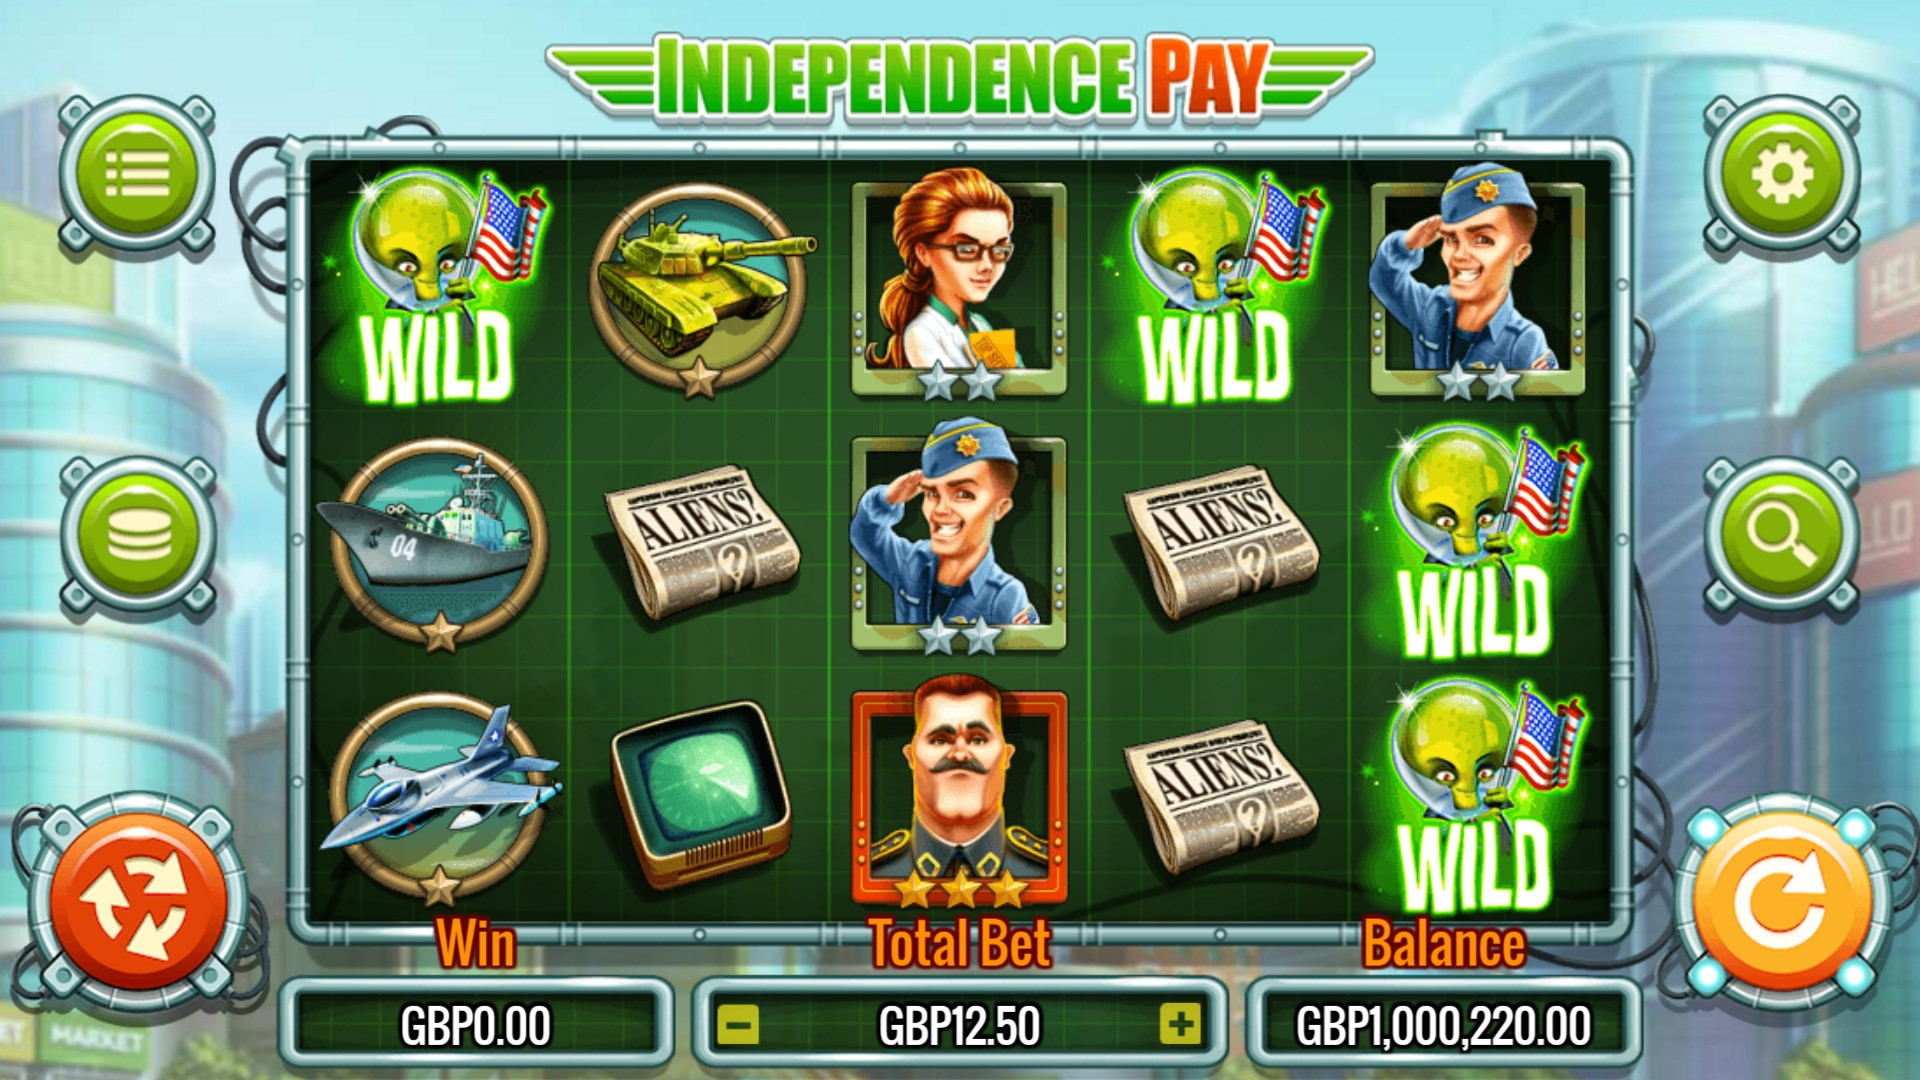 Independence Pay (Independence Pay) from category Slots